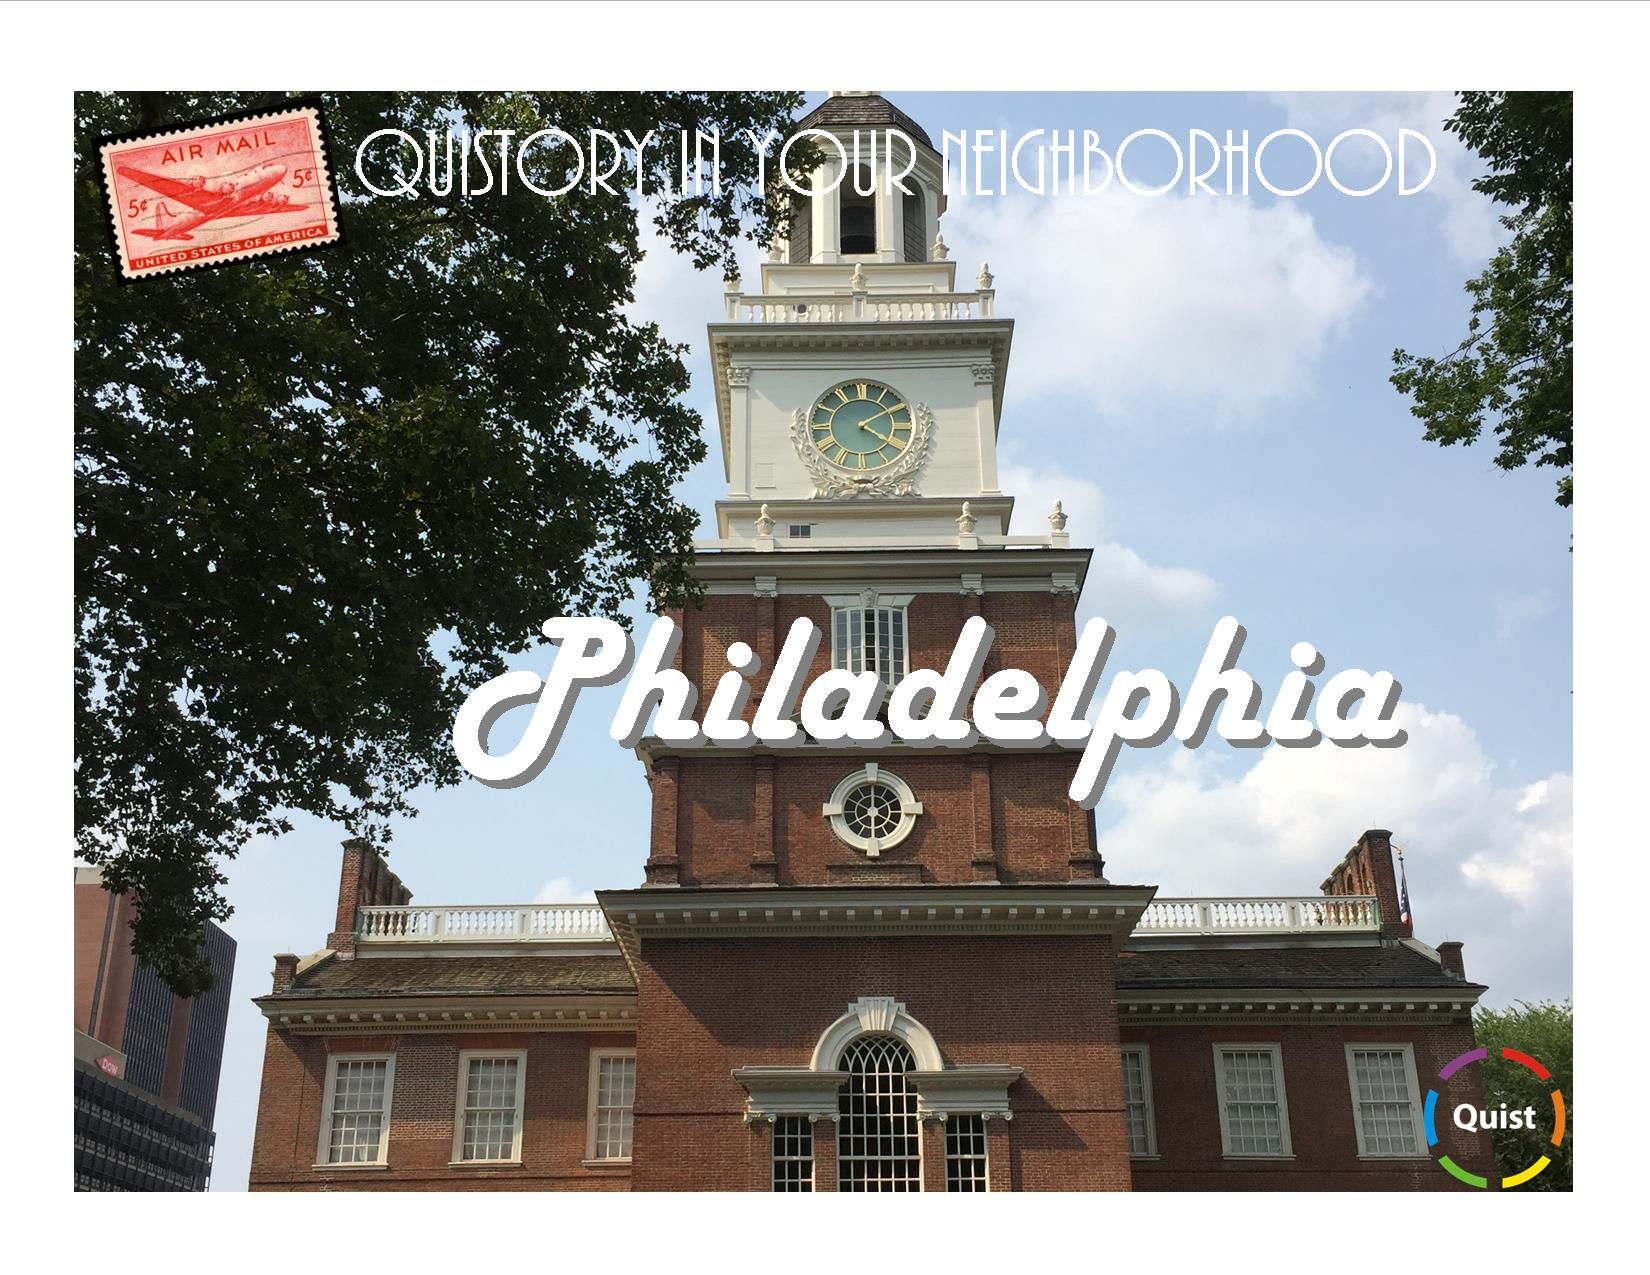 Quistory in your Neighborhood Images for Philadelphia